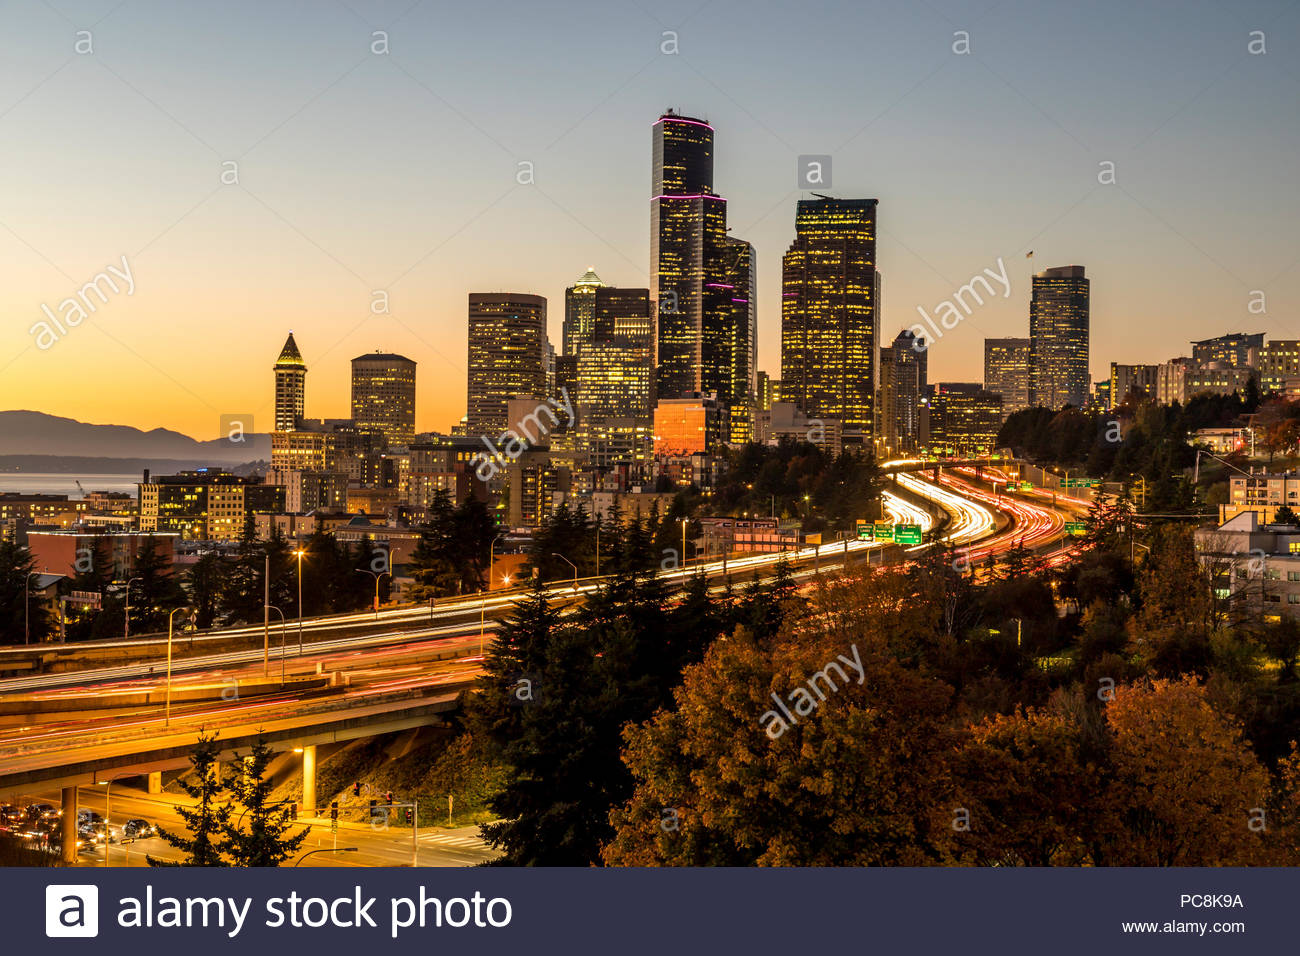 Twilight view of skyline and Interstate 5 Highway. - Stock Image